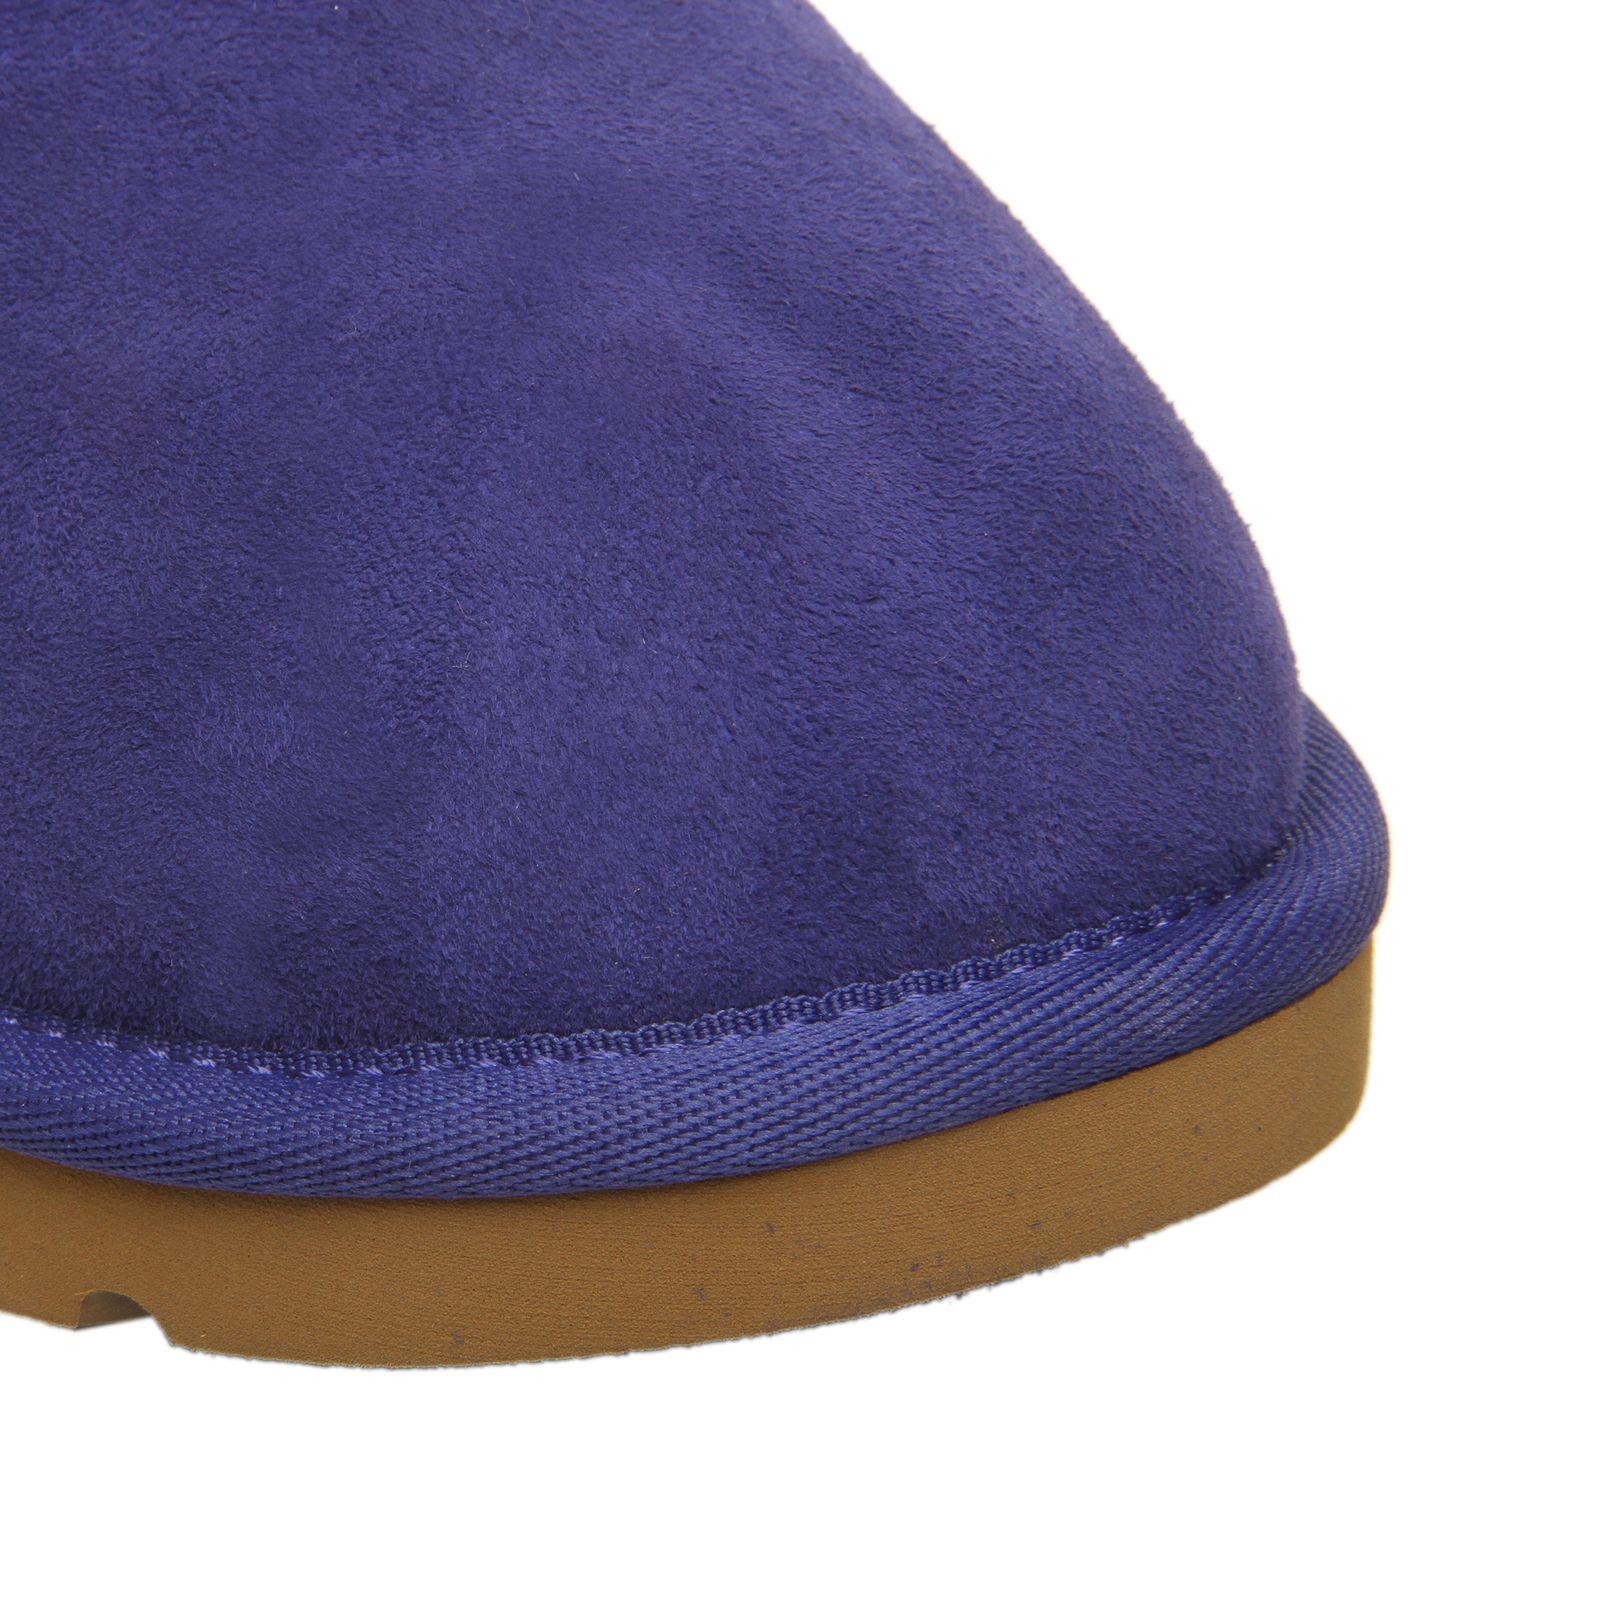 UGG Classic Short Boots in Blue